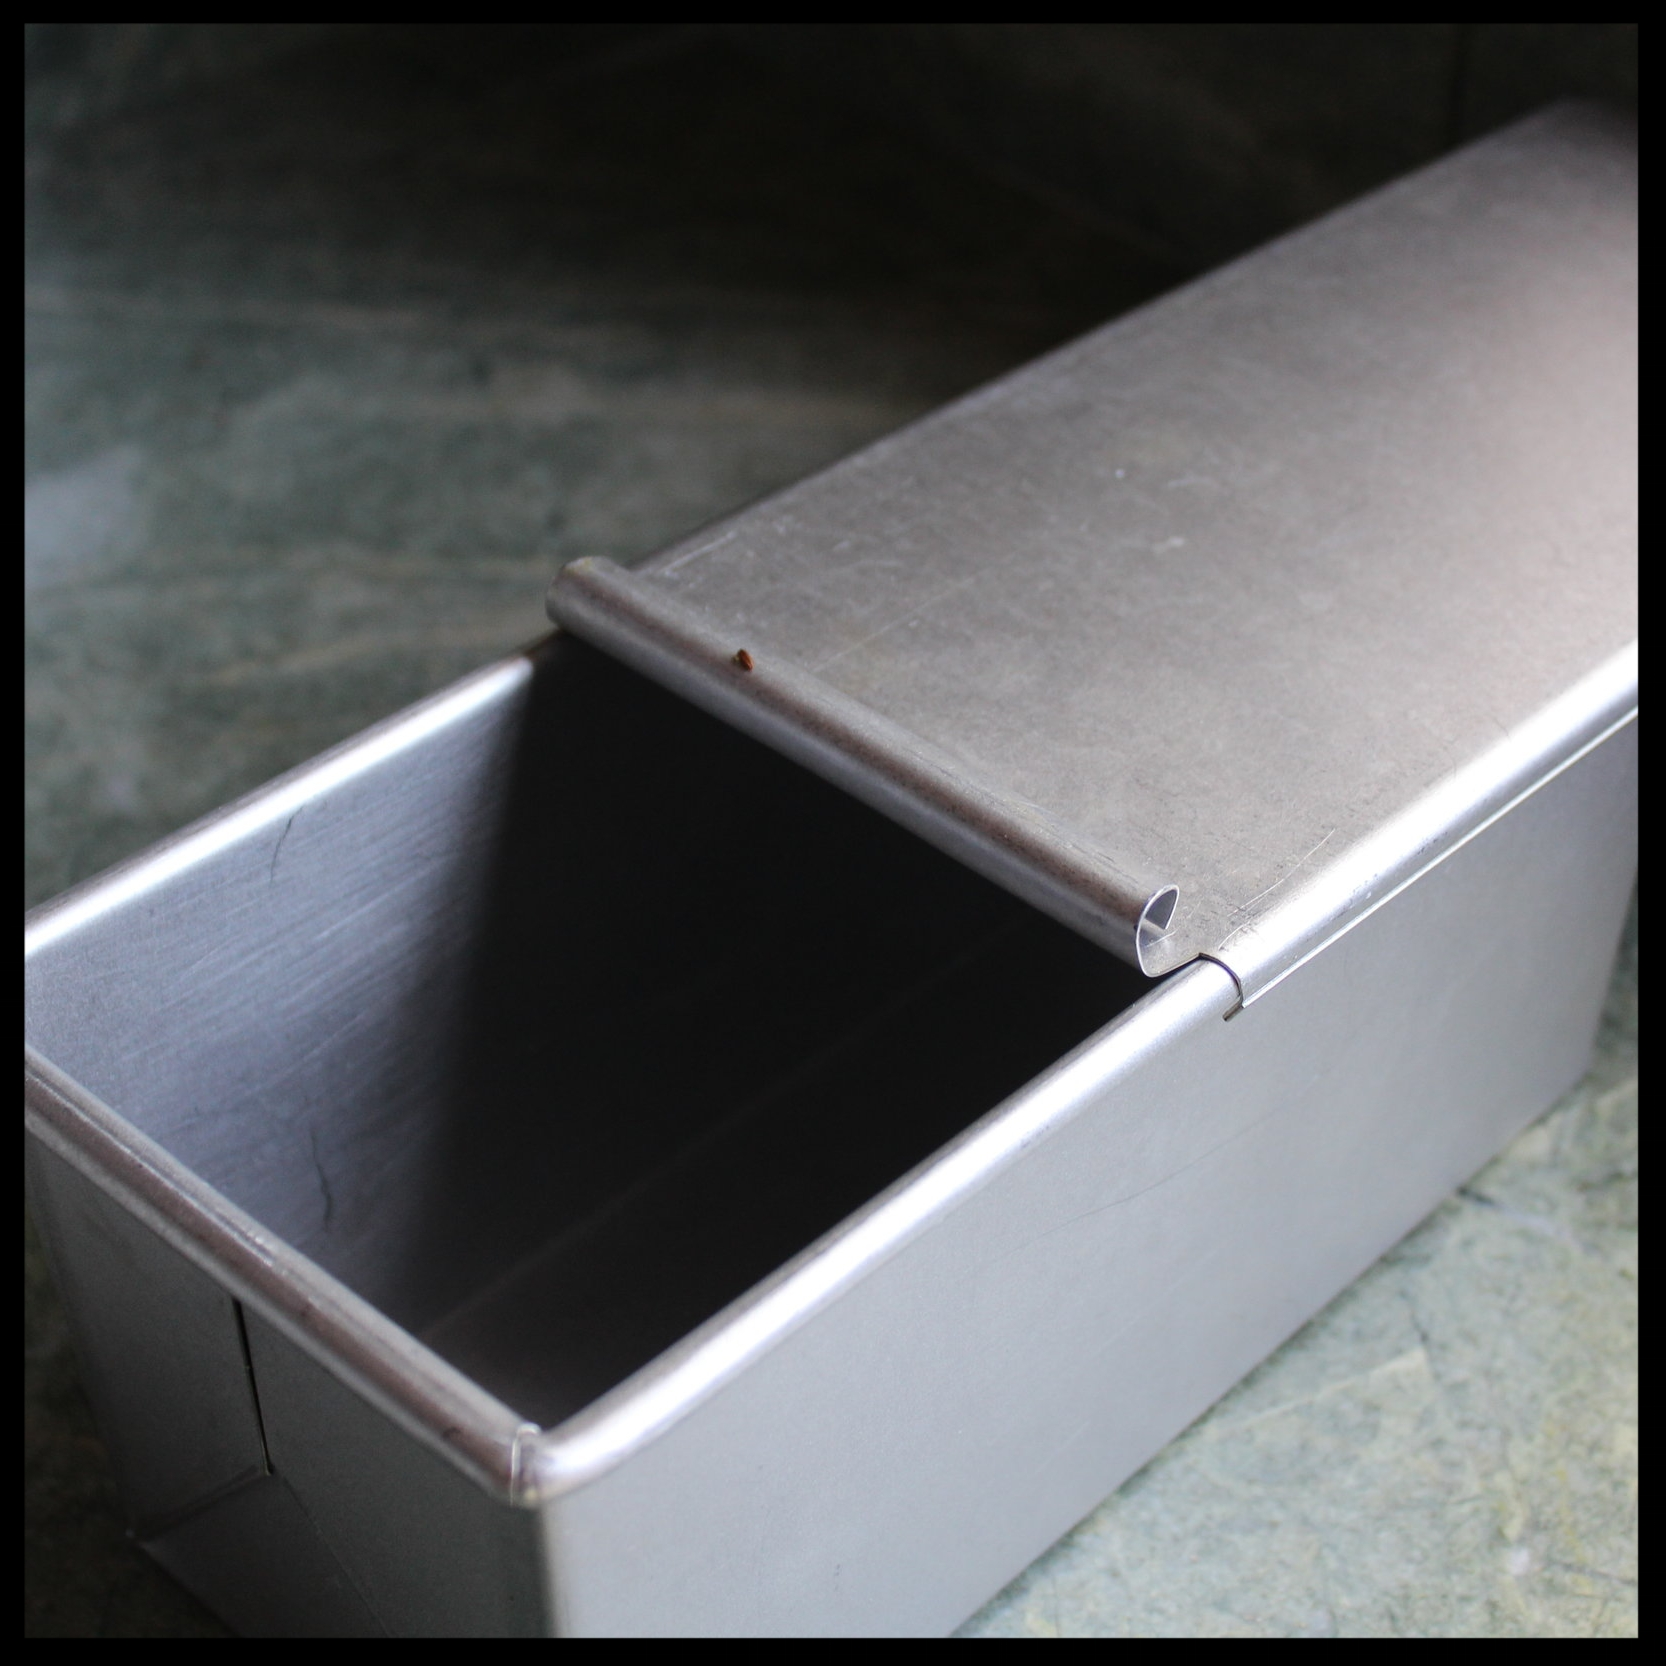 KIDDOCJJ tip: for those of you who are unfamiliar with a a Pullman Pan, here's one. These are wonderful when you are trying to make a perfectly square loaf of bread, like with brioche, or any sandwich loaf. They can be used with their tops (that slide on and off), or topless!    If using loaf pans without tops, you'll have a pretty loaf as well, but with the characteristic curvy top.